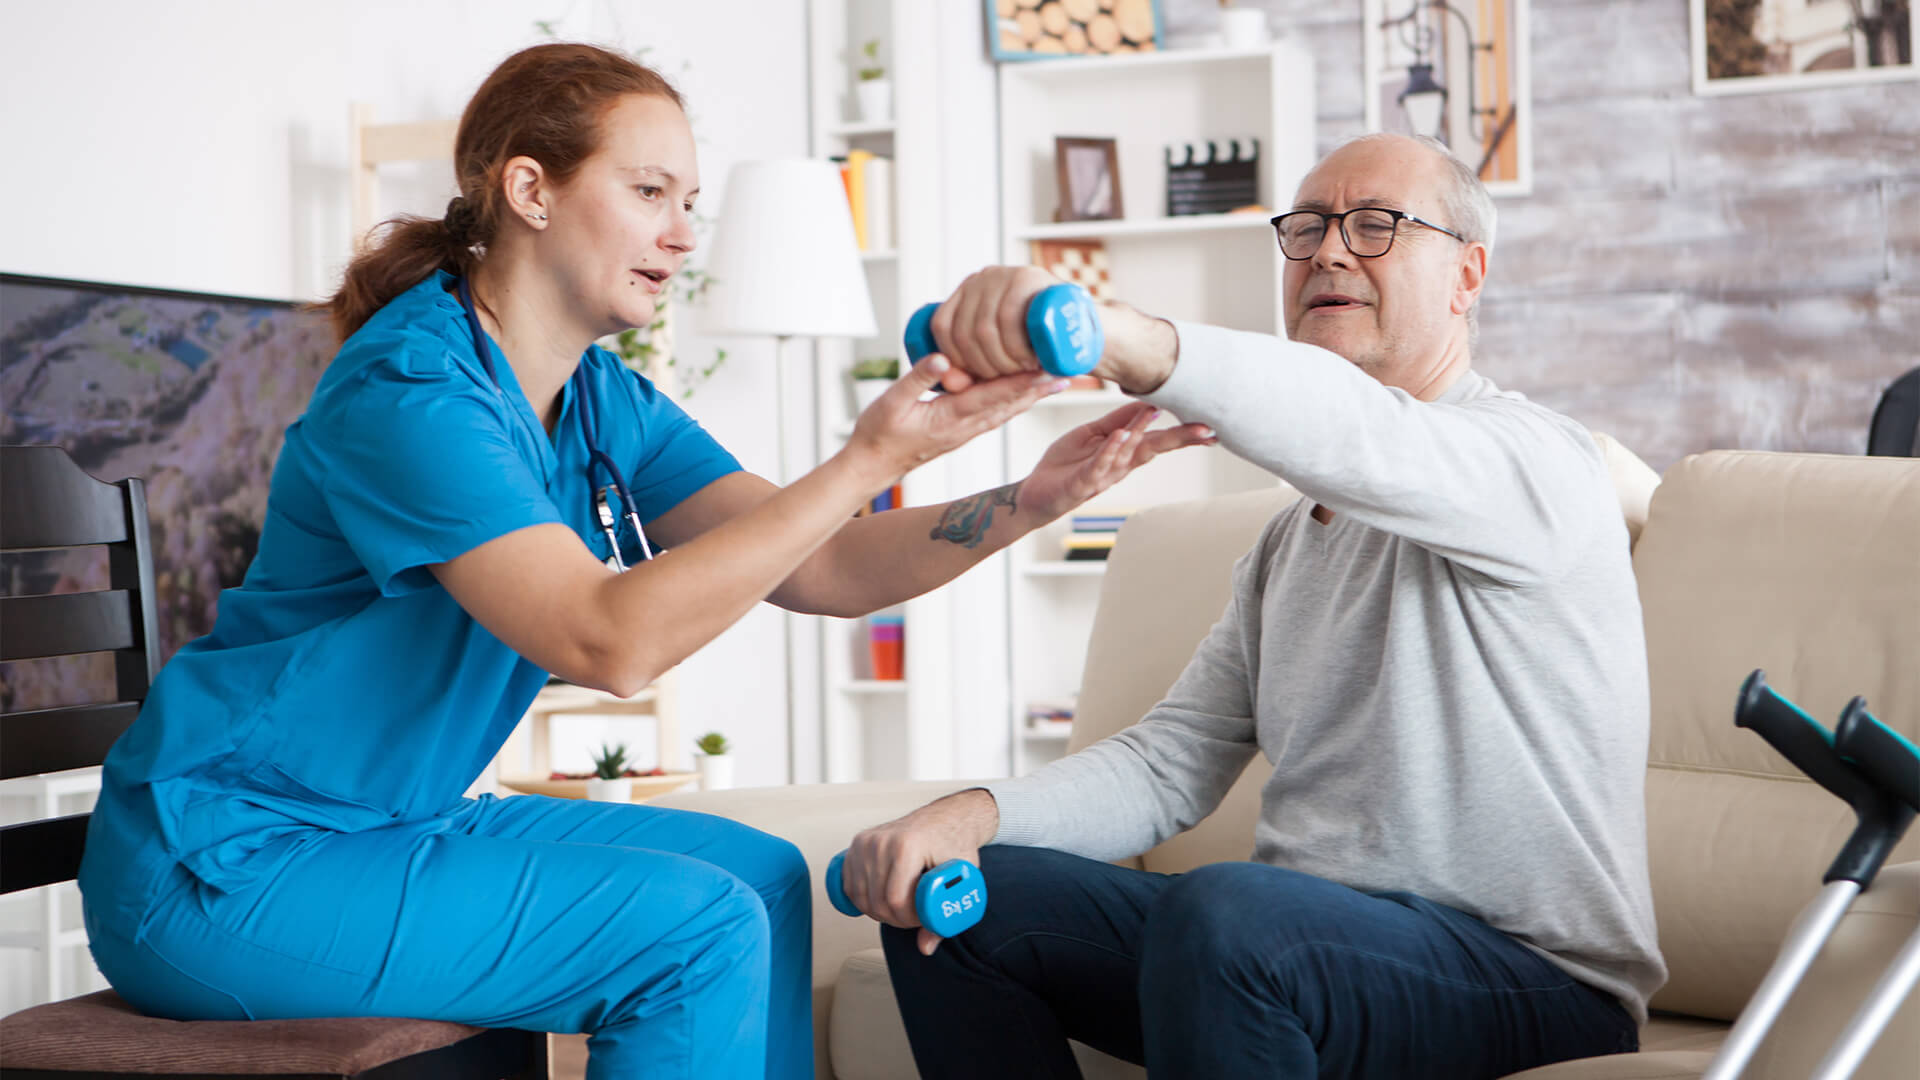 5 Benefits of Professional Health Care